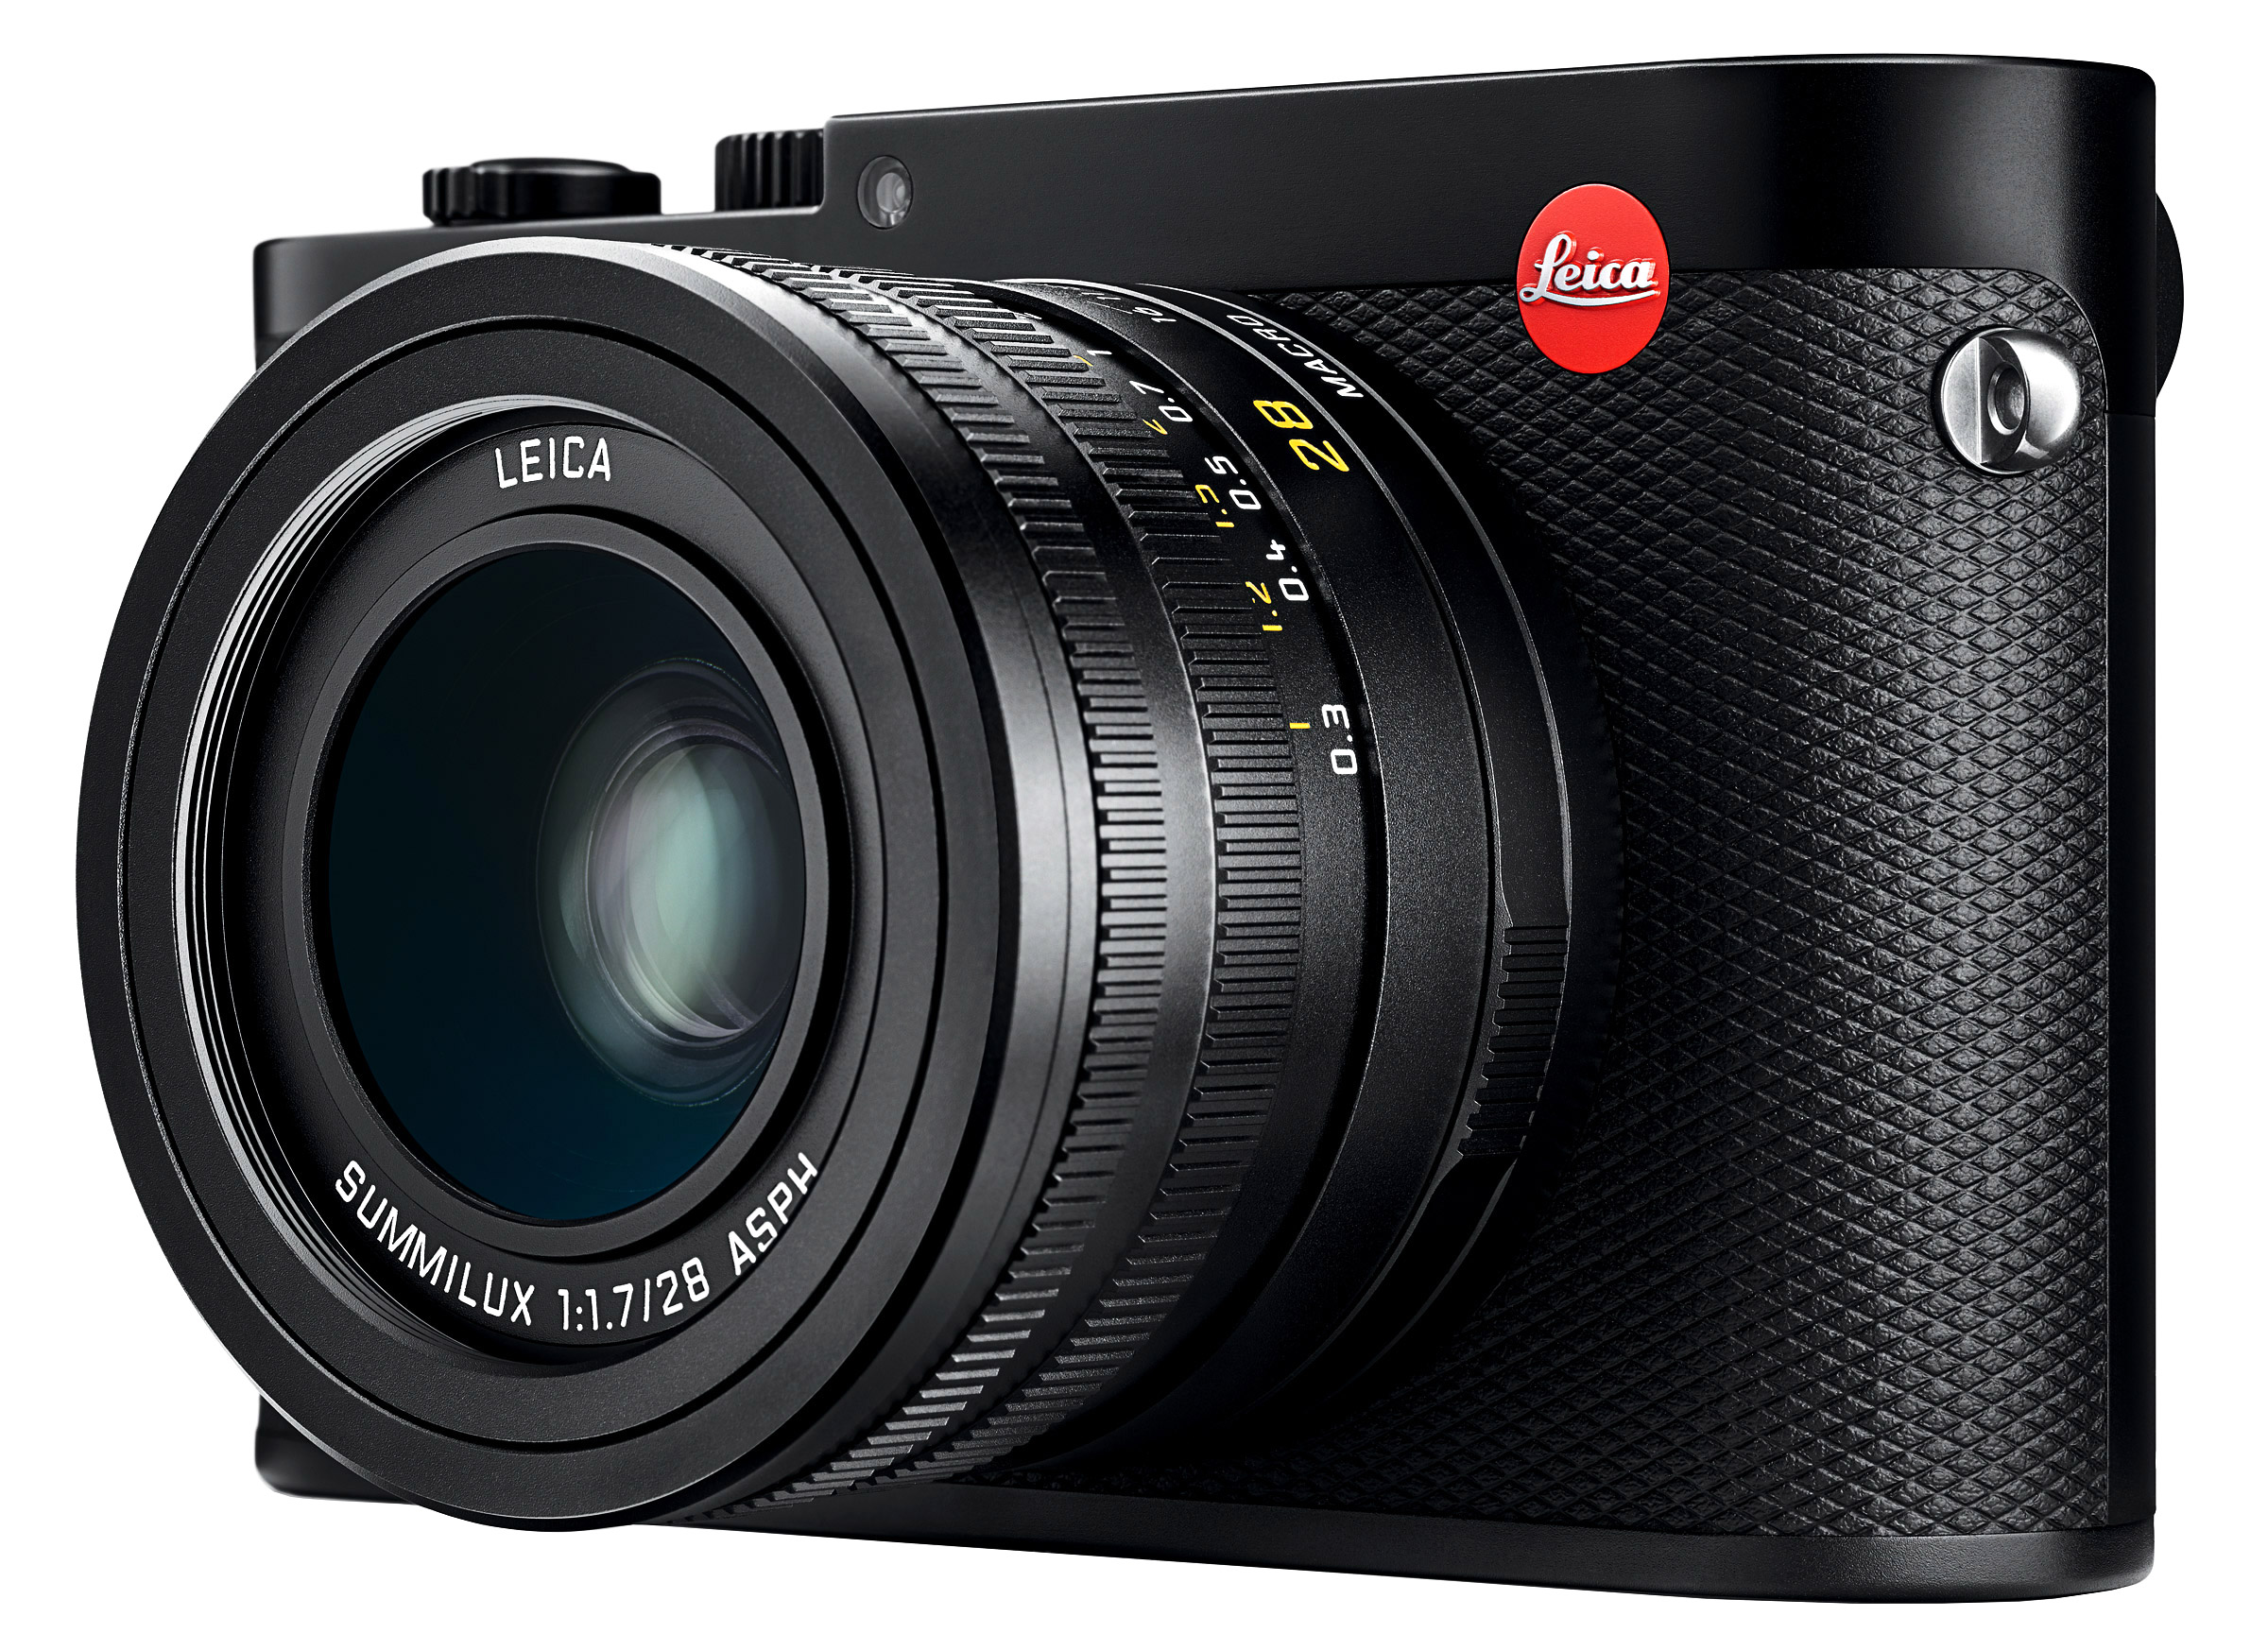 Leica Q (Typ 116) : Specifications and Opinions